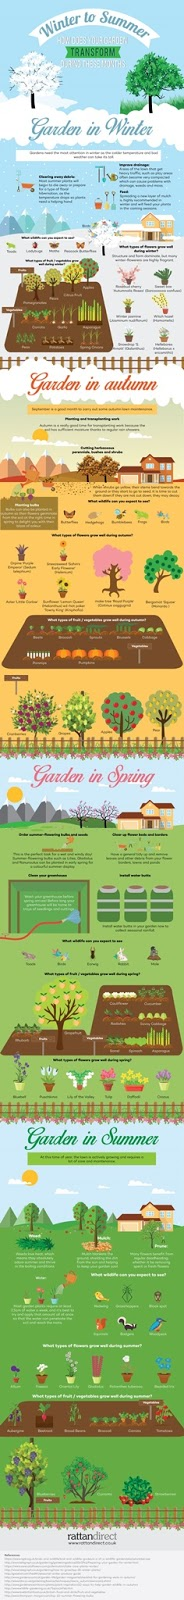 Gardening Seasons – EVERYTHING You Need to Know